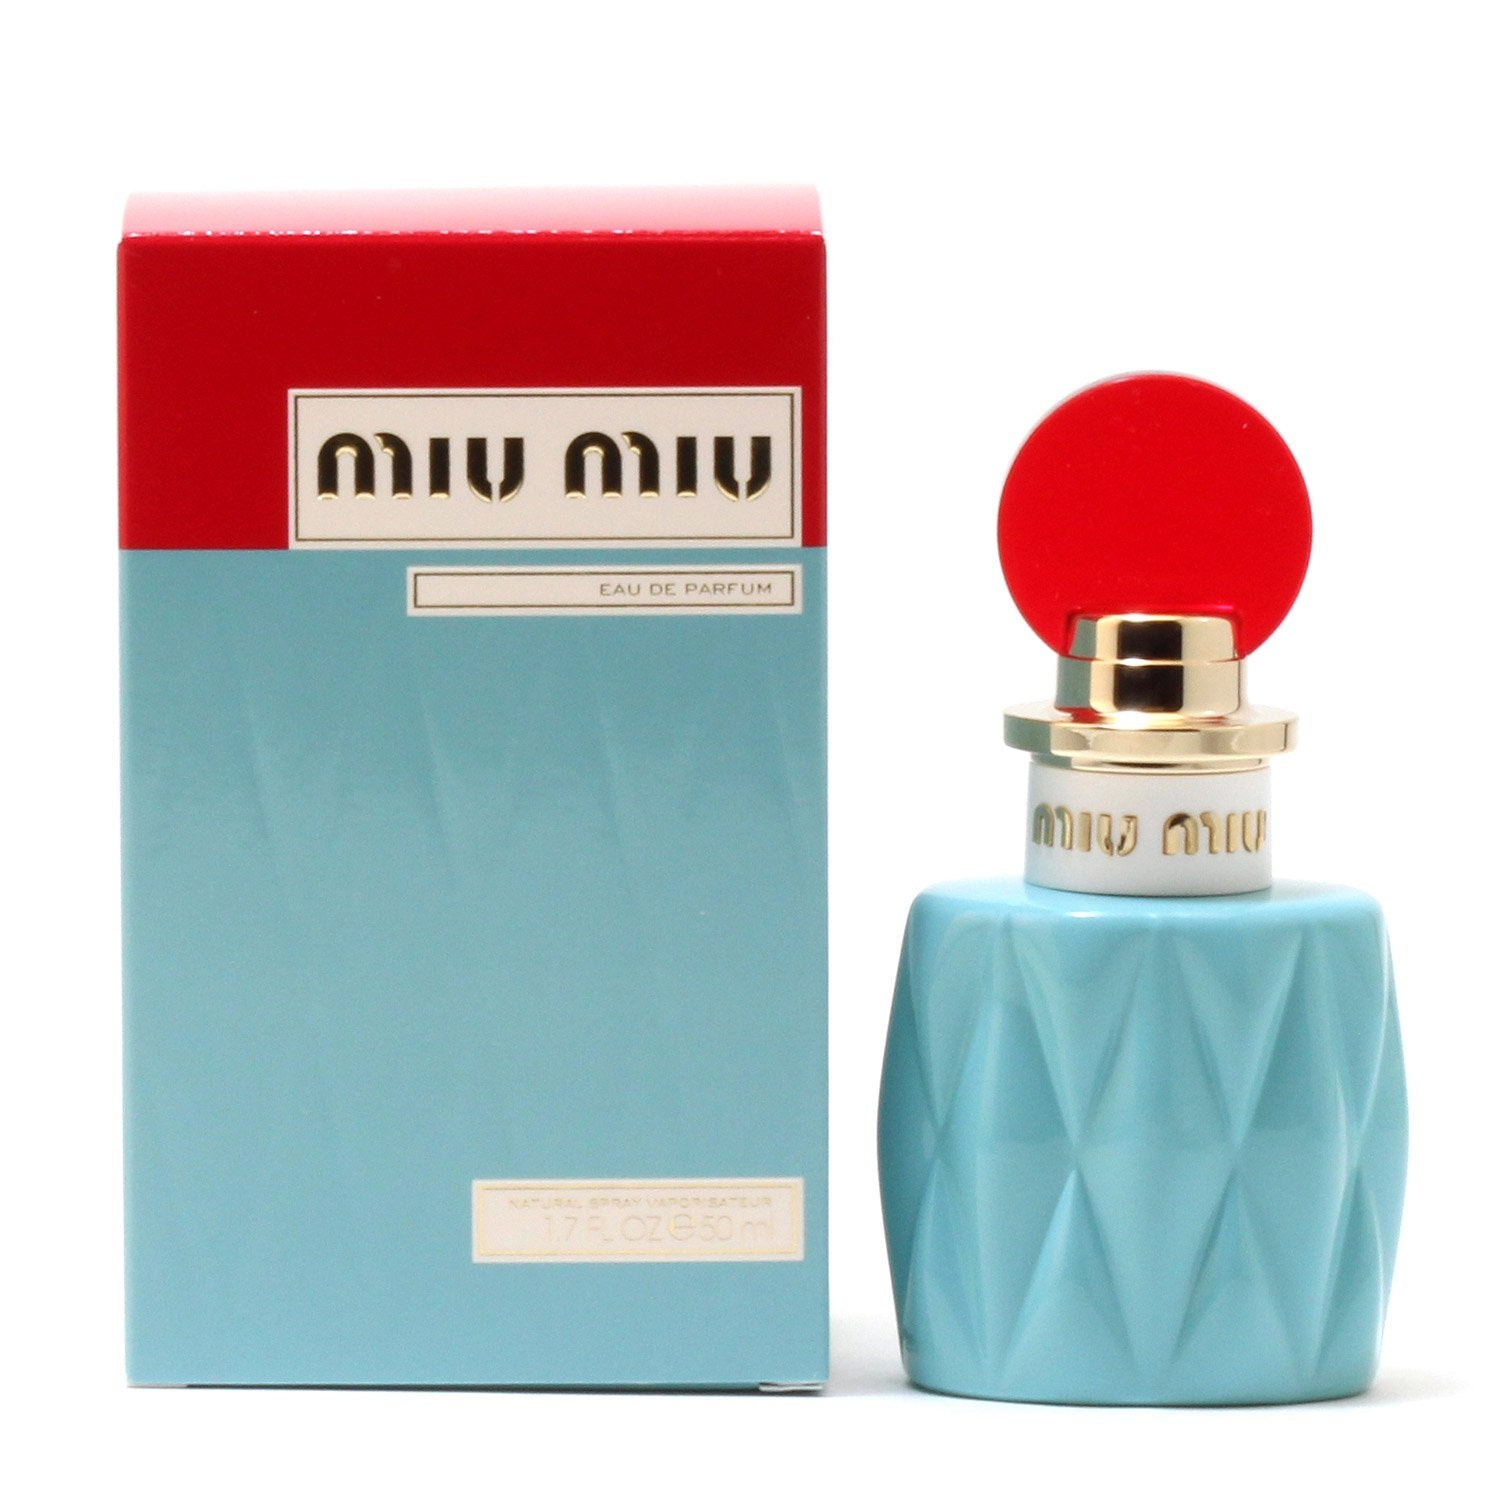 Perfume - MIU MIU FOR WOMEN - EAU DE PARFUM SPRAY, 1.7 OZ